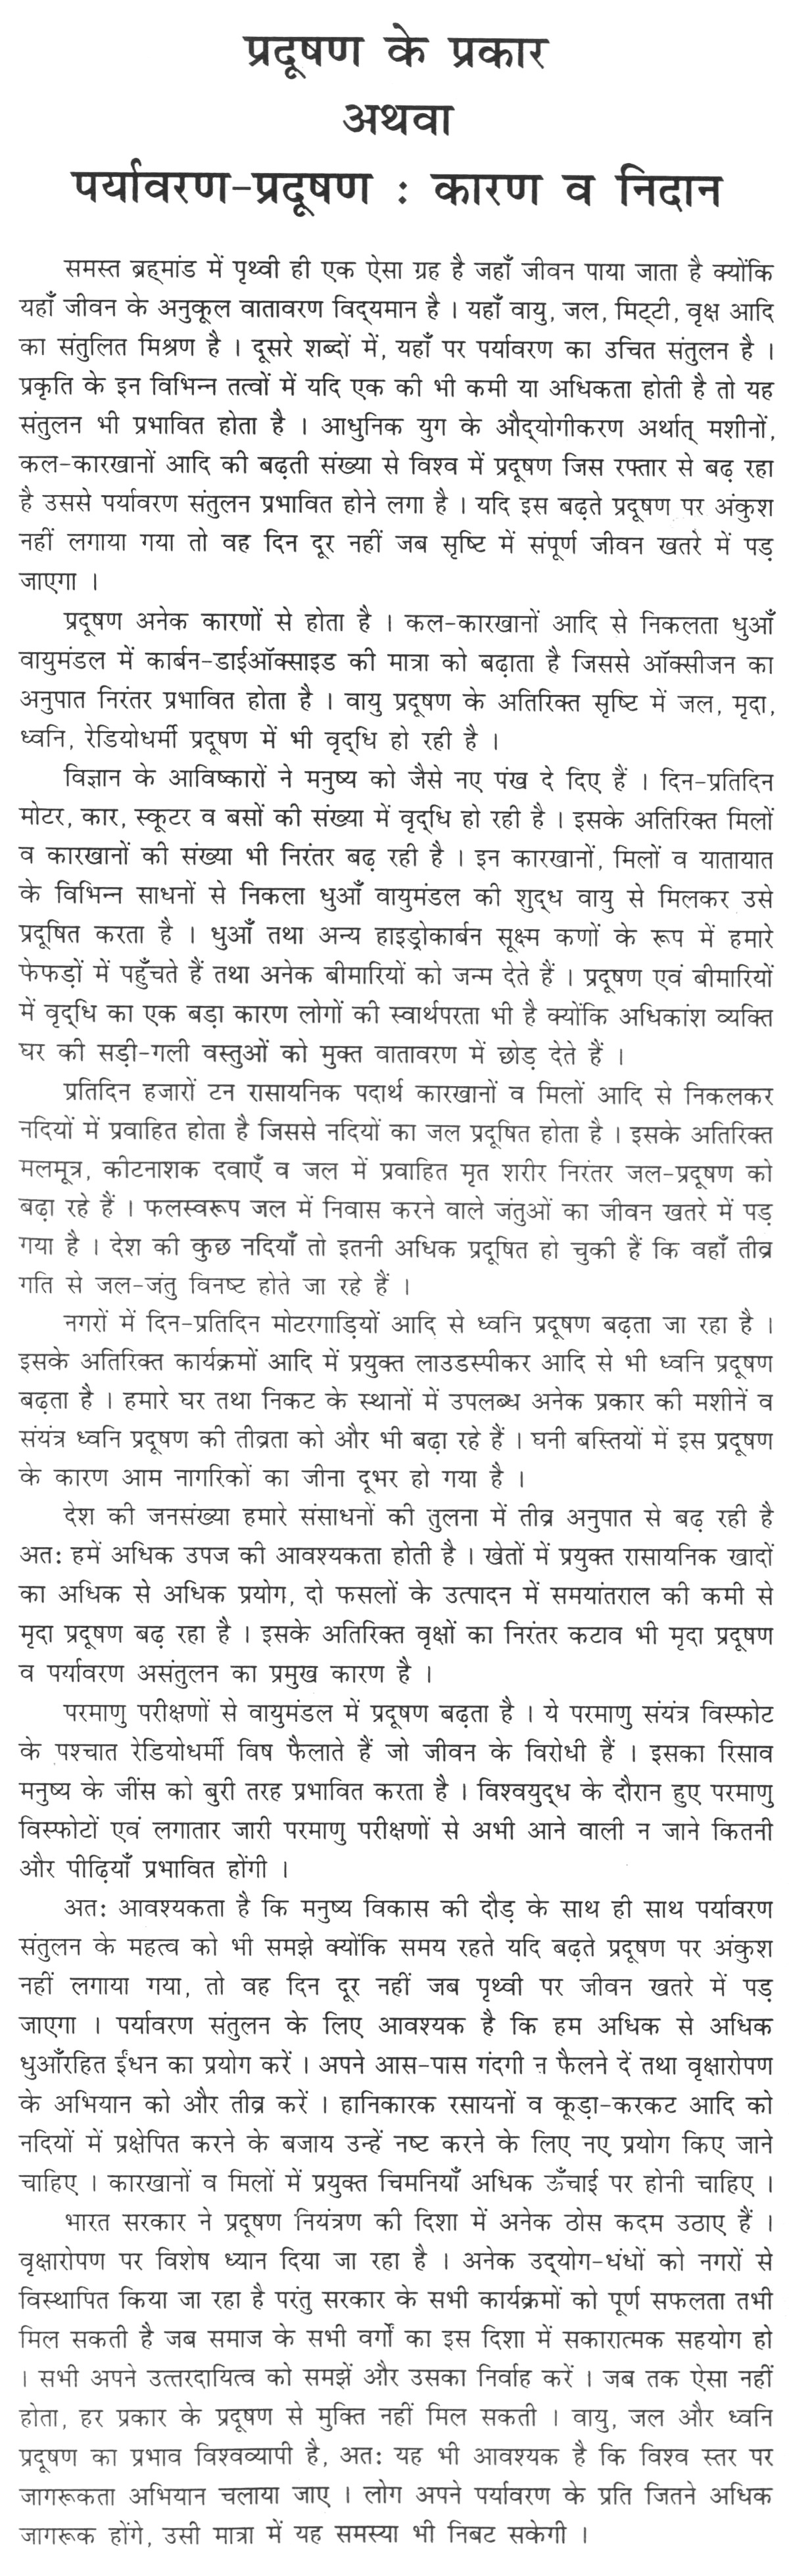 014 Good Habits Essay In Hindi Exceptional Food Wikipedia Full